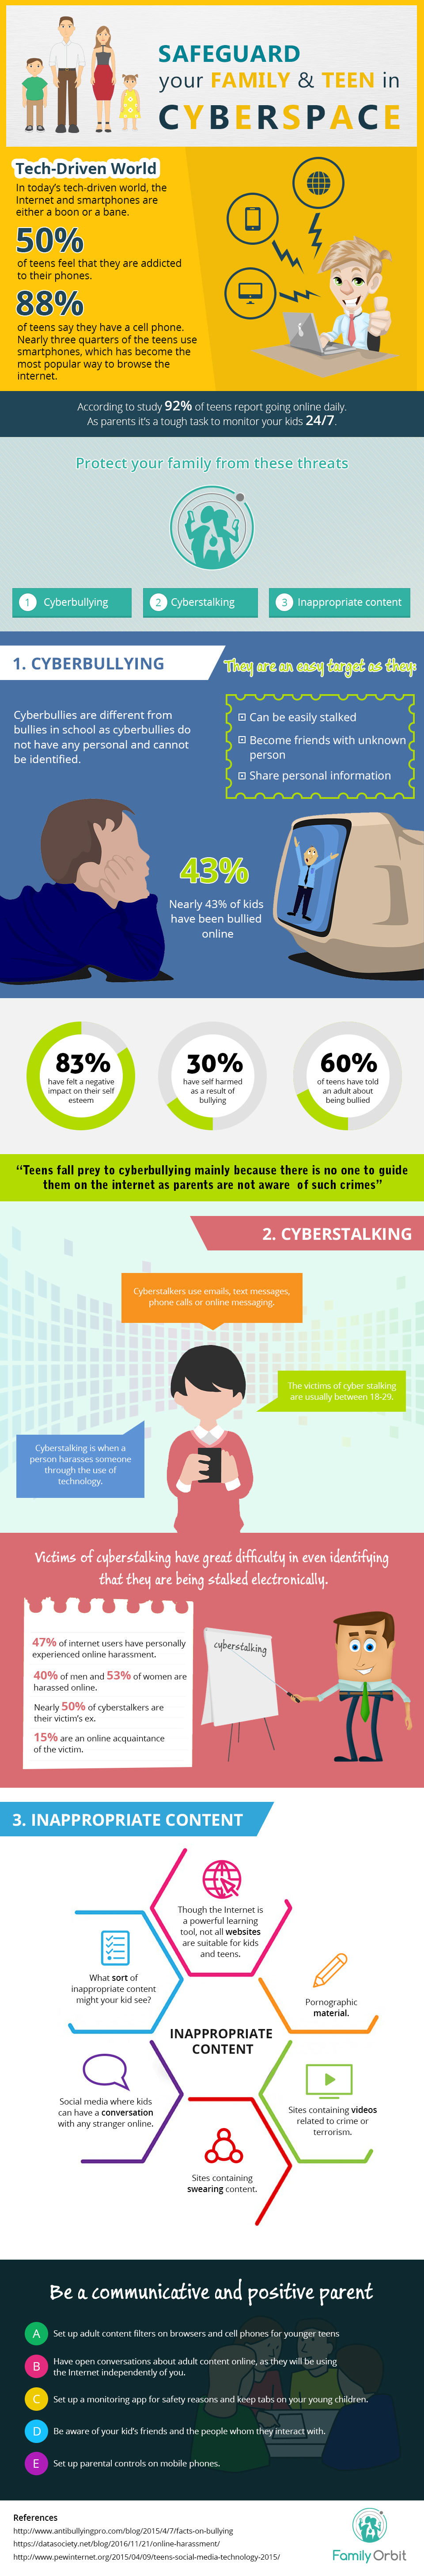 Safeguard Your Family and Teen in Cyberspace by FamilyOrbit